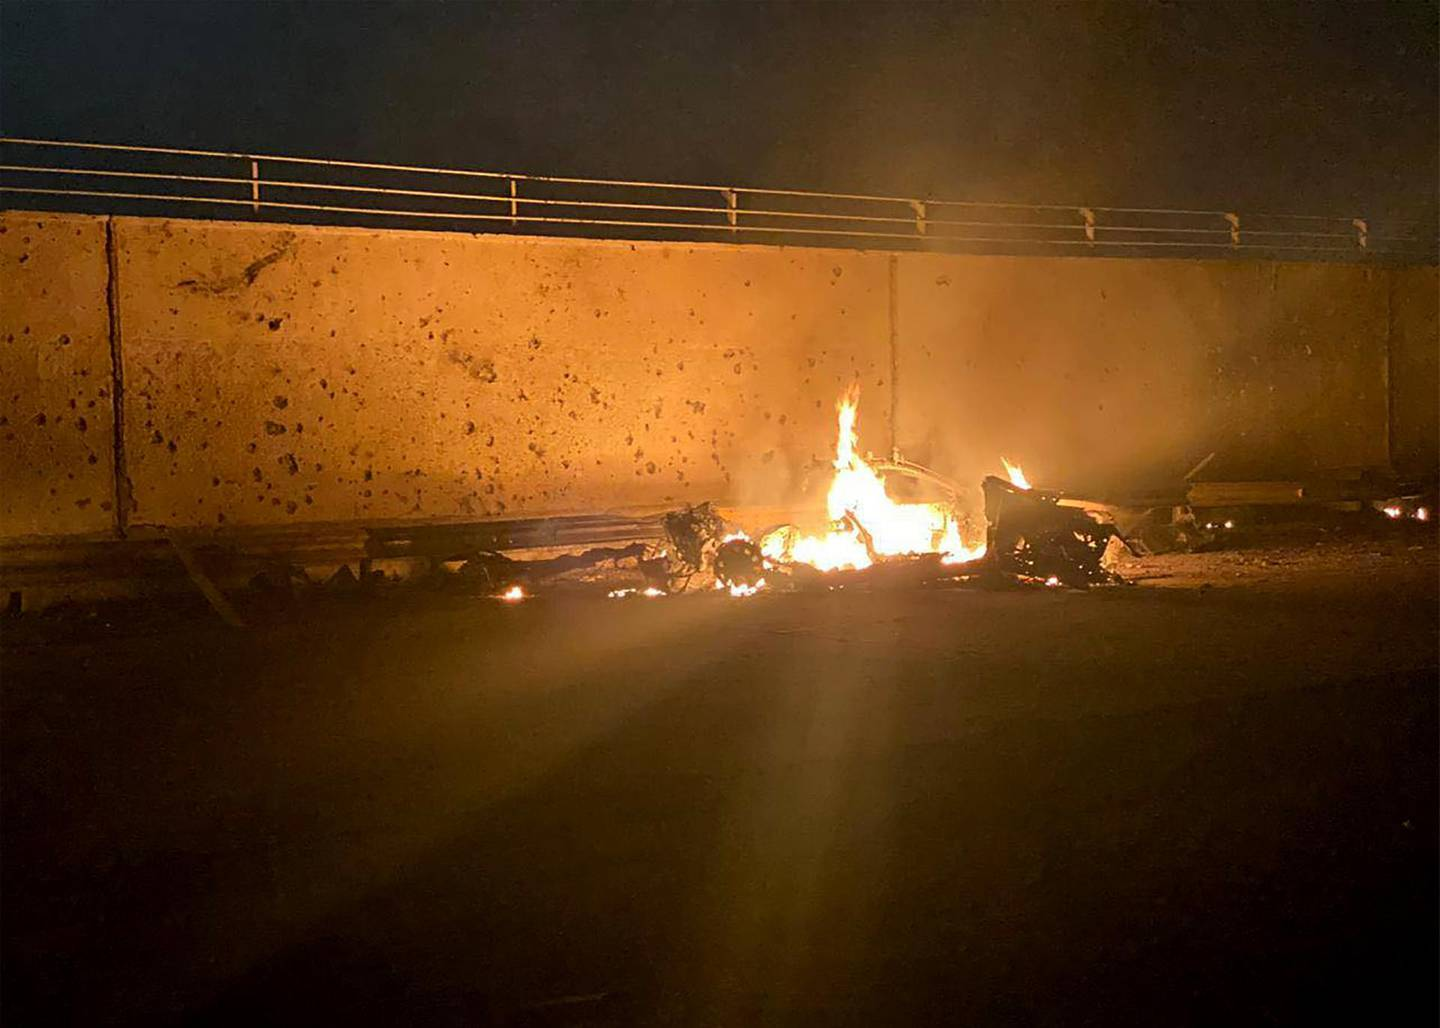 """TOPSHOT - A picture published by the media office of the Iraqi military's joint operations forces on their official Facebook page shows a destroyed vehicle on fire following a US strike on January 3, 2020 on Baghdad international airport road in which top Iranian commander Qasem Soleimani was killed along with eight others, including the deputy head of Iraq's powerful Hashed al-Shaabi paramilitary force. Early Friday, a volley of US missiles hit Baghdad's international airport, striking a convoy belonging to the Hashed al-Shaabi, an Iraqi paramilitary force with close ties to Iran. Soleimani was killed in the US strike on the Iraqi capital's airport, according to Hashed, in a dramatic escalation of tensions between Washington and Tehran. - === RESTRICTED TO EDITORIAL USE - MANDATORY CREDIT """"AFP PHOTO / HO / IRAQI MILITARY"""" - NO MARKETING NO ADVERTISING CAMPAIGNS - DISTRIBUTED AS A SERVICE TO CLIENTS ===  / AFP / IRAQI MILITARY / - / === RESTRICTED TO EDITORIAL USE - MANDATORY CREDIT """"AFP PHOTO / HO / IRAQI MILITARY"""" - NO MARKETING NO ADVERTISING CAMPAIGNS - DISTRIBUTED AS A SERVICE TO CLIENTS ==="""